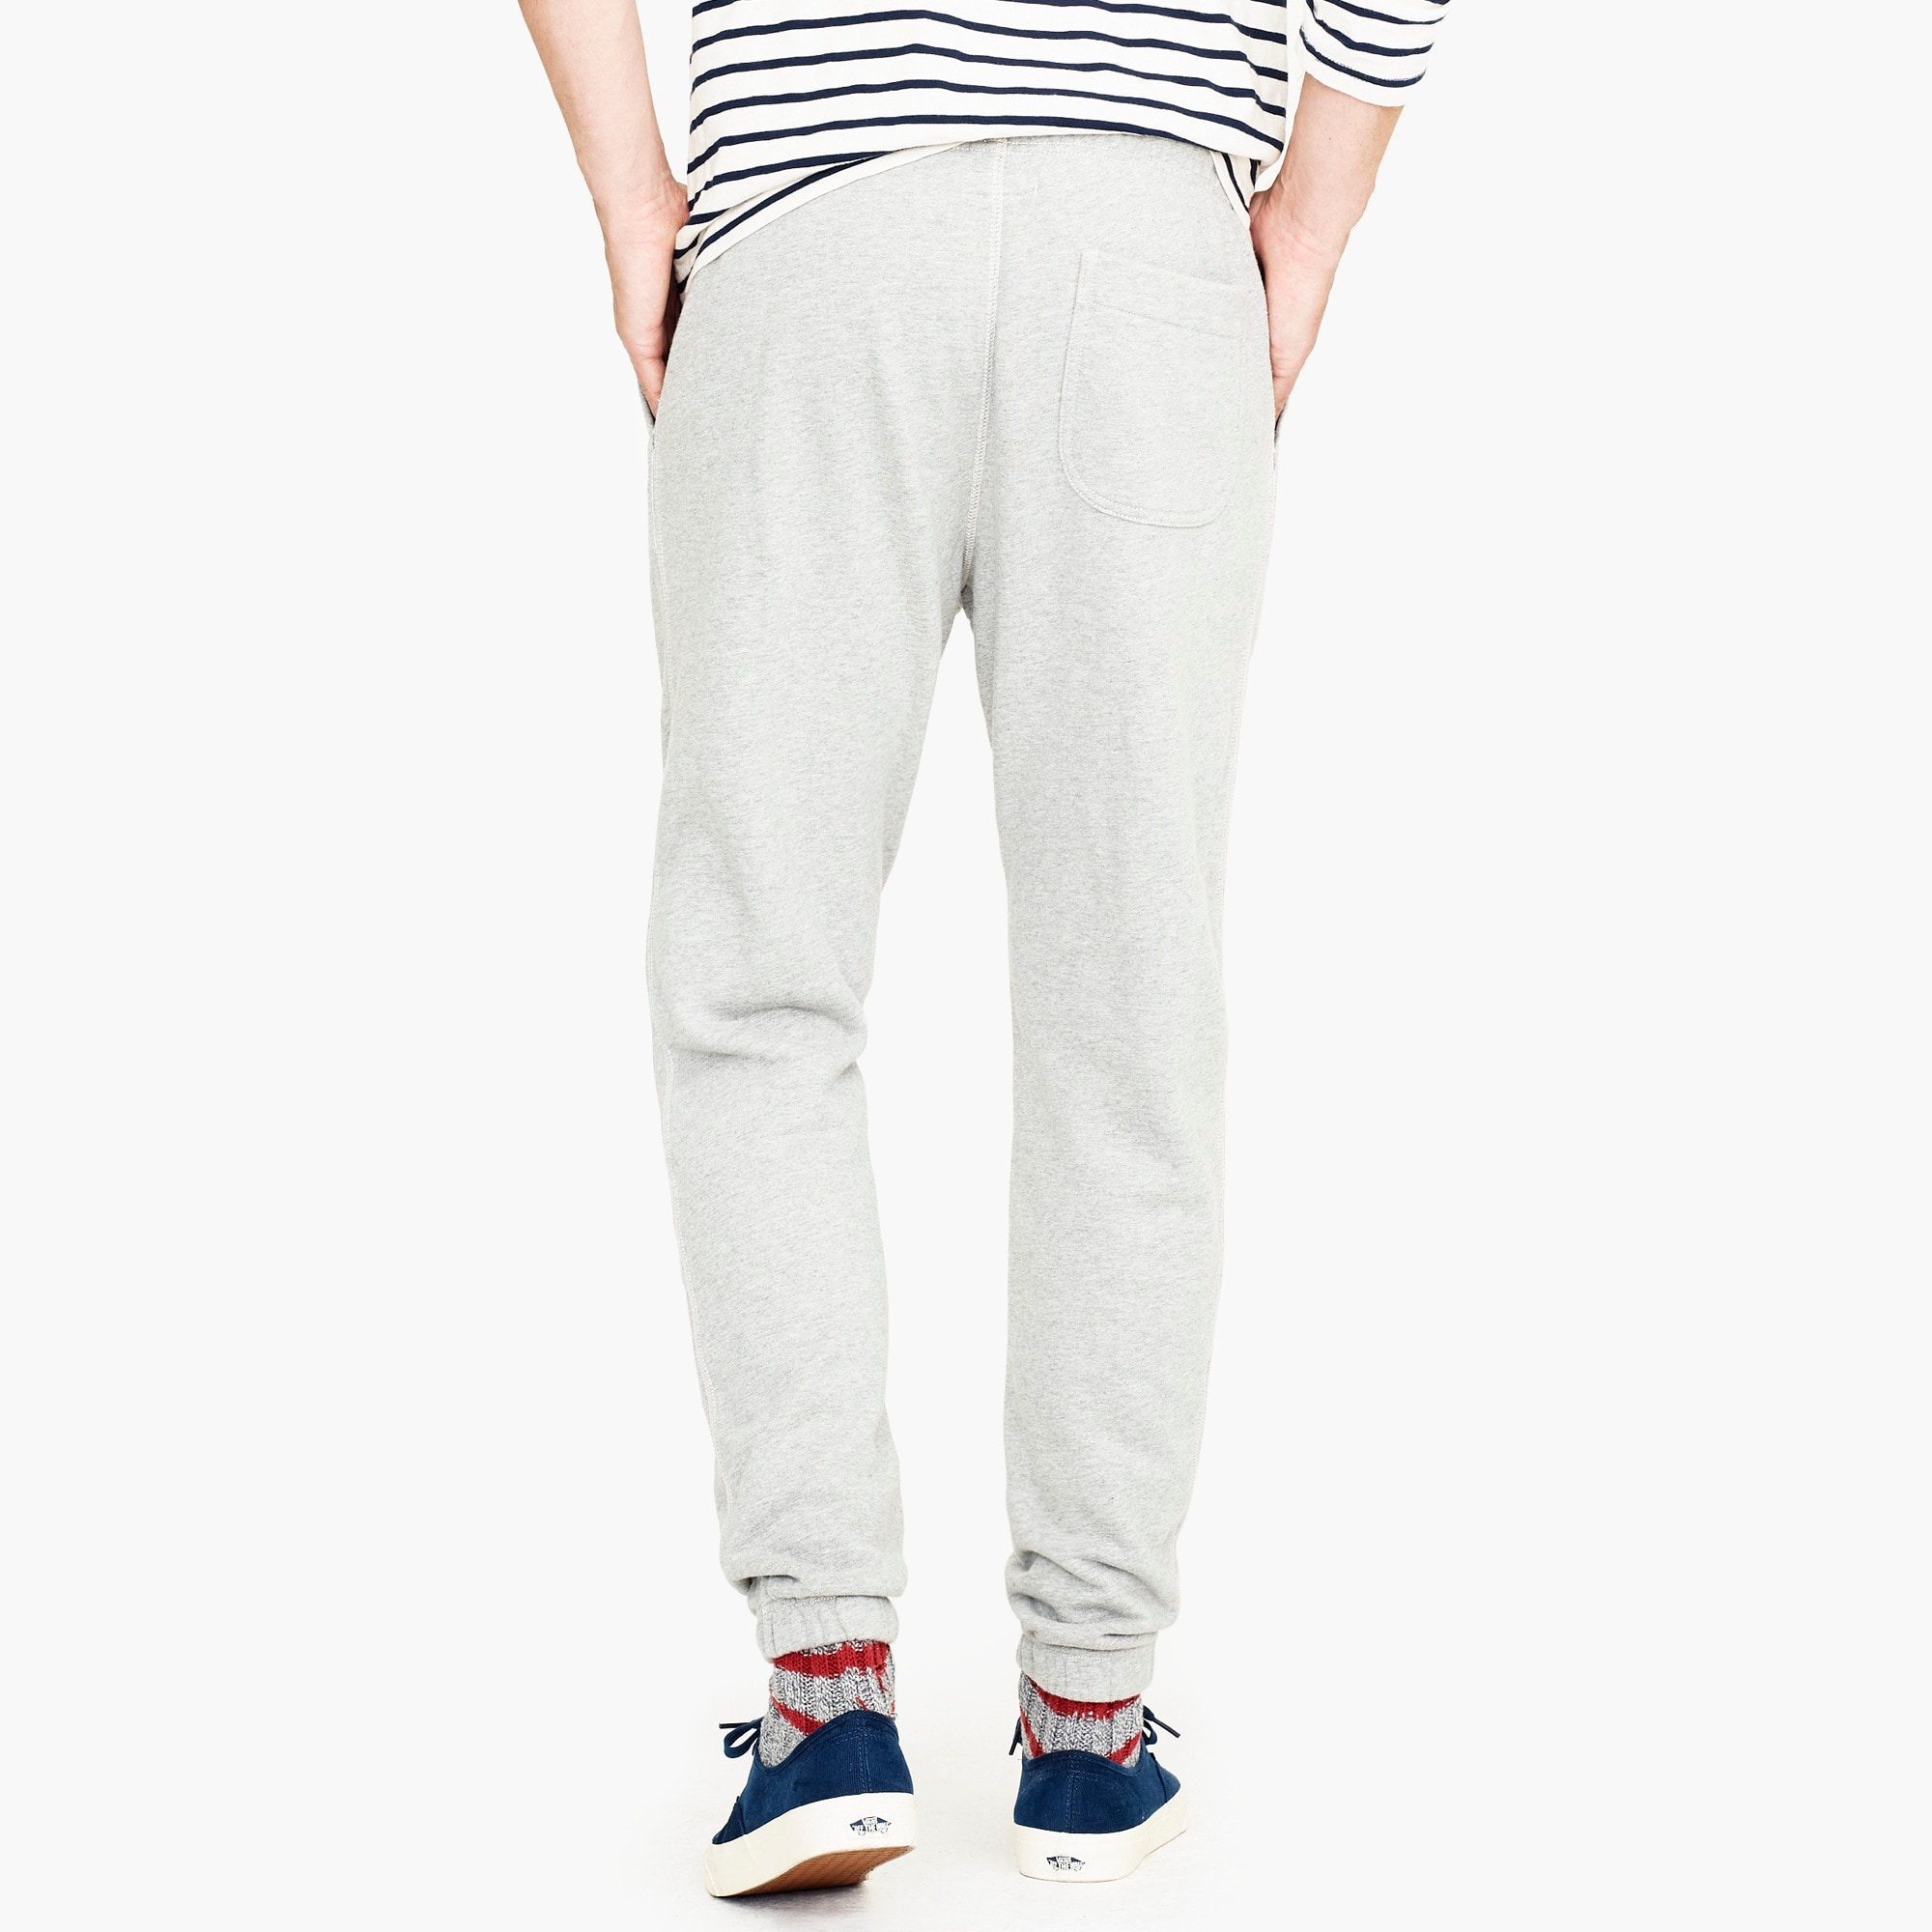 Image 3 for French terry sweatpants